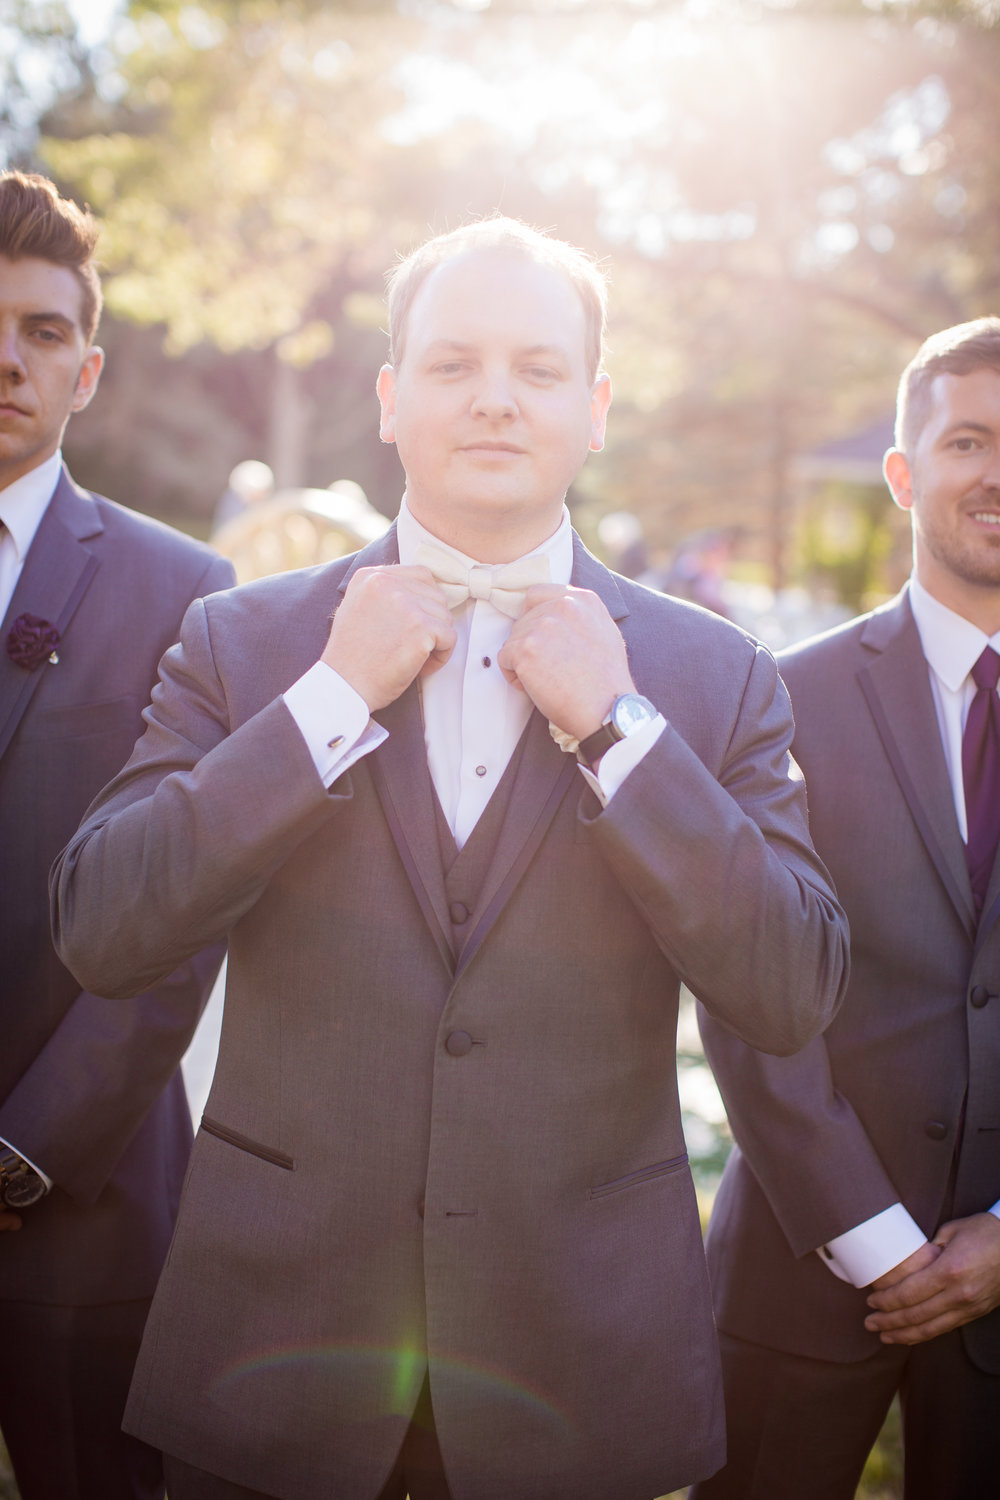 Groom posing for professional wedding photos